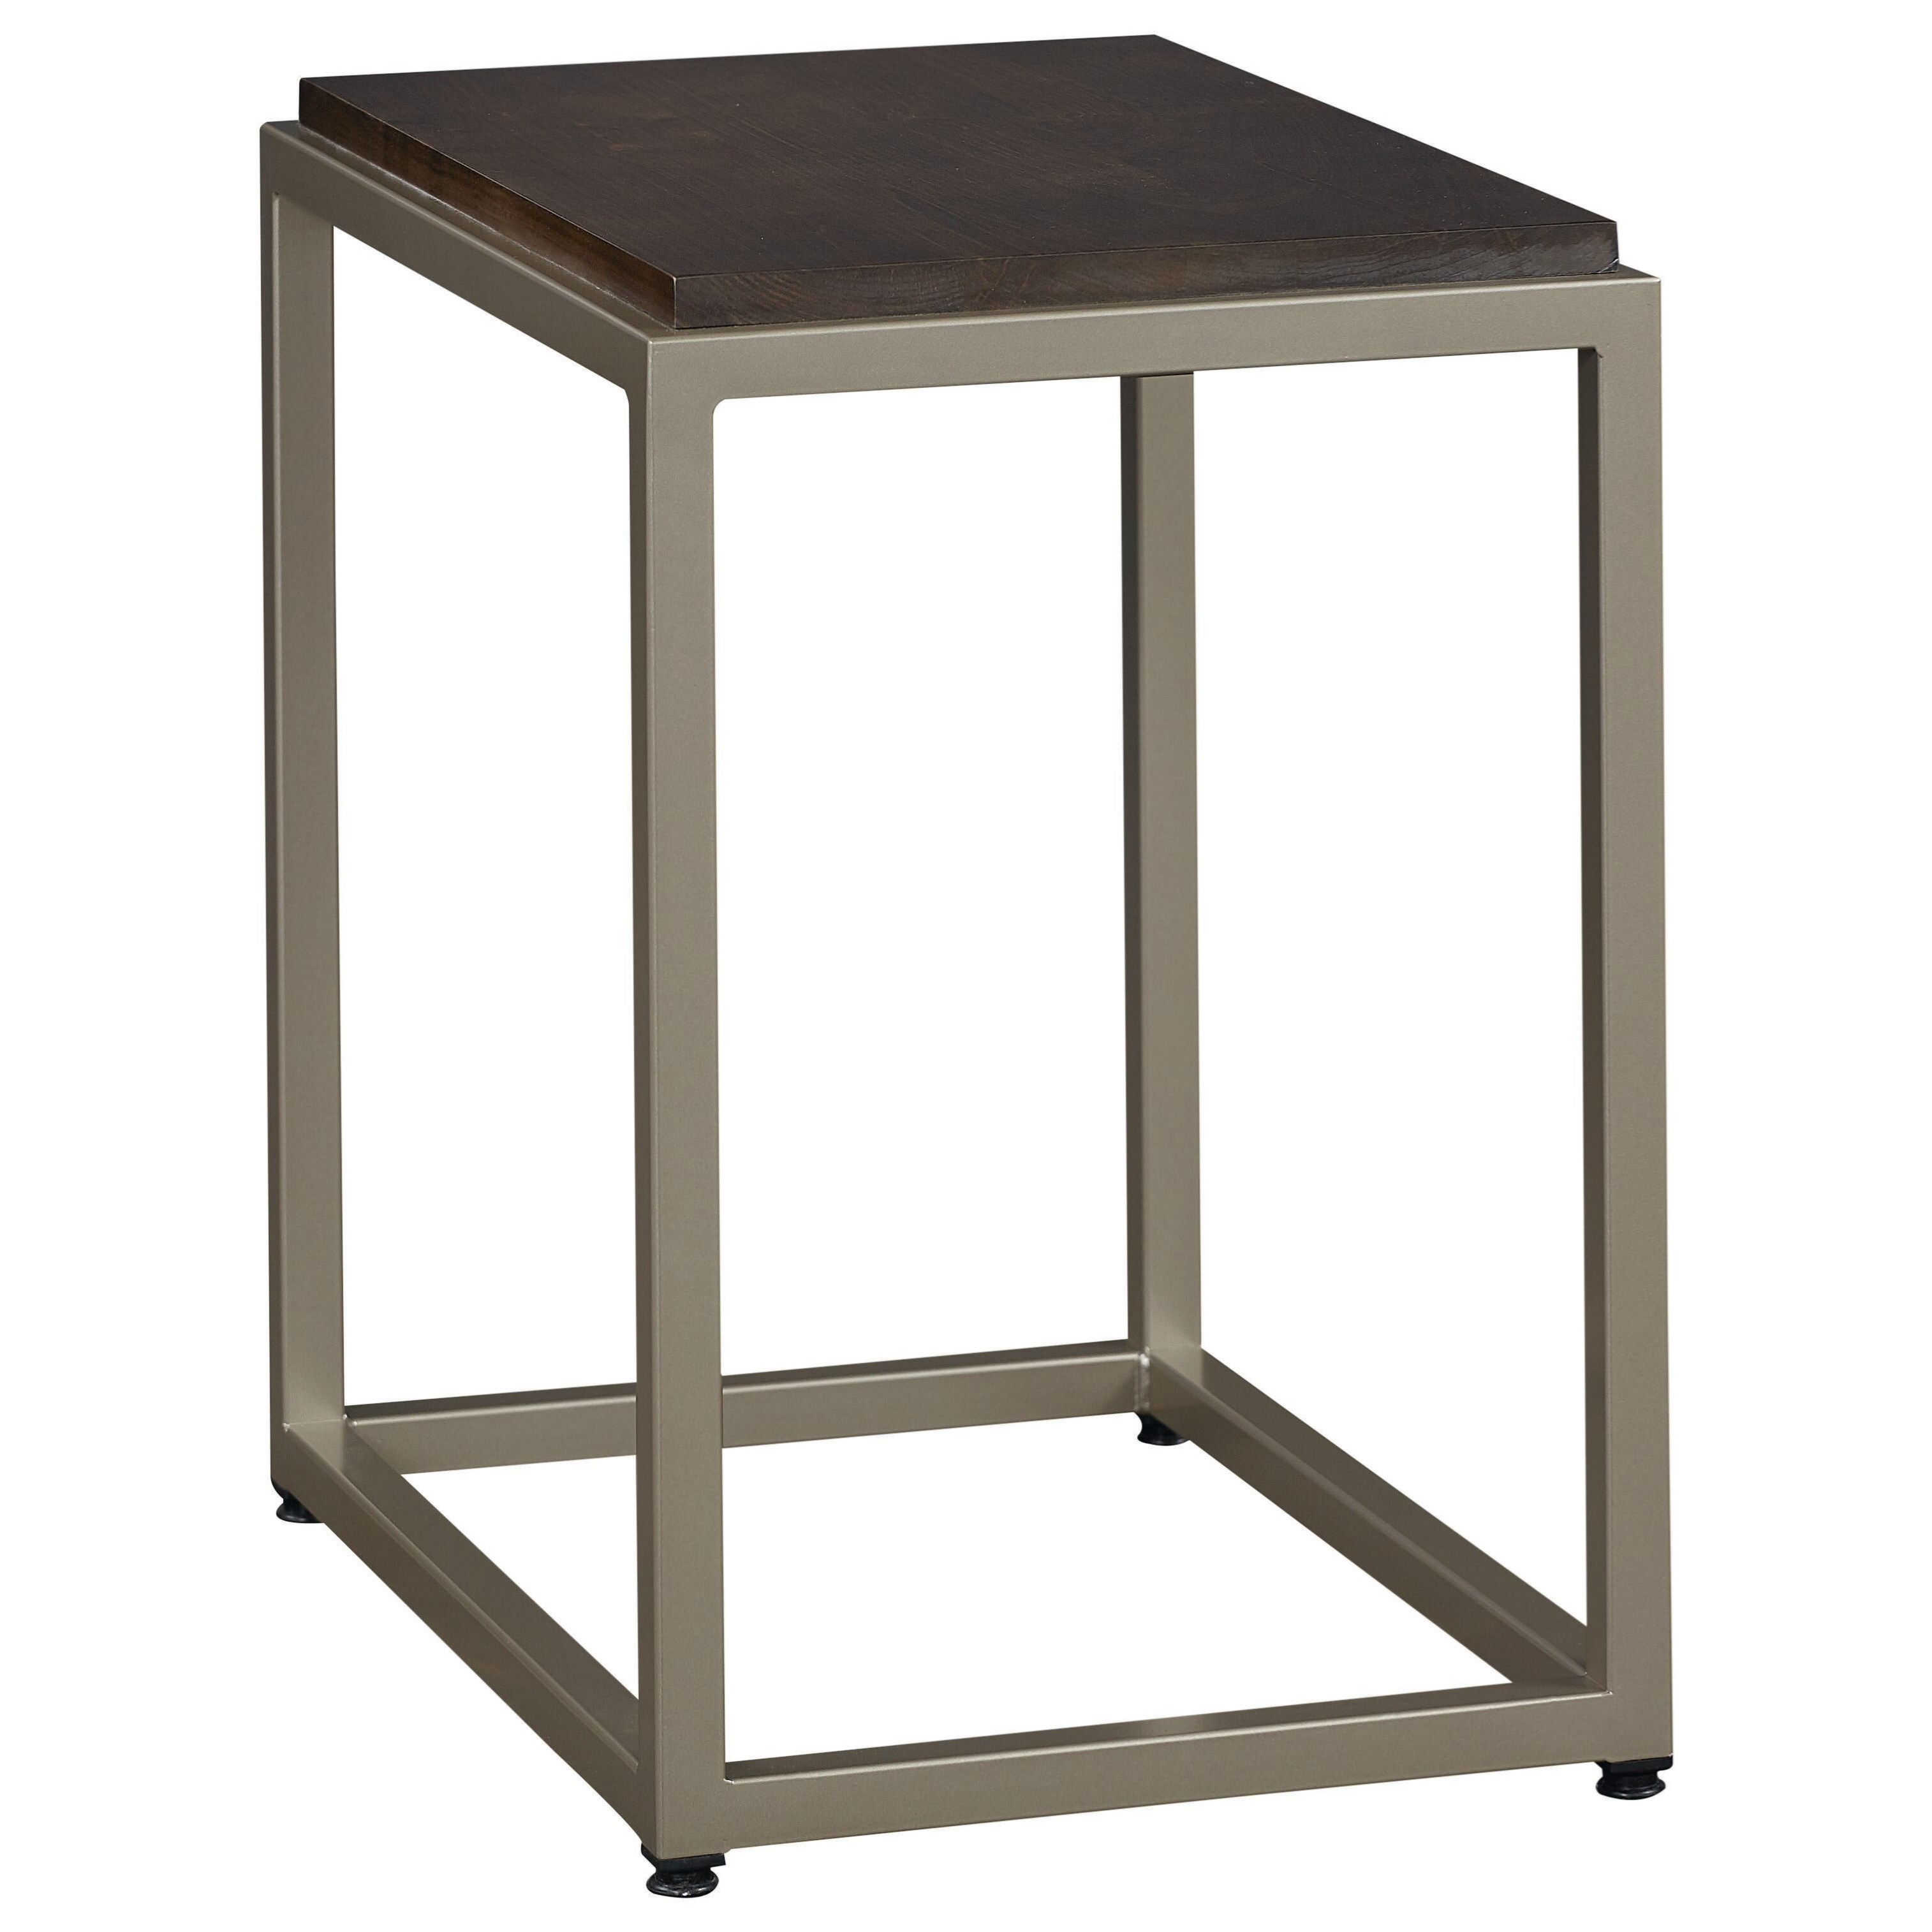 BenchMade Midtown Chairside Table by Bassett at Bassett of Cool Springs